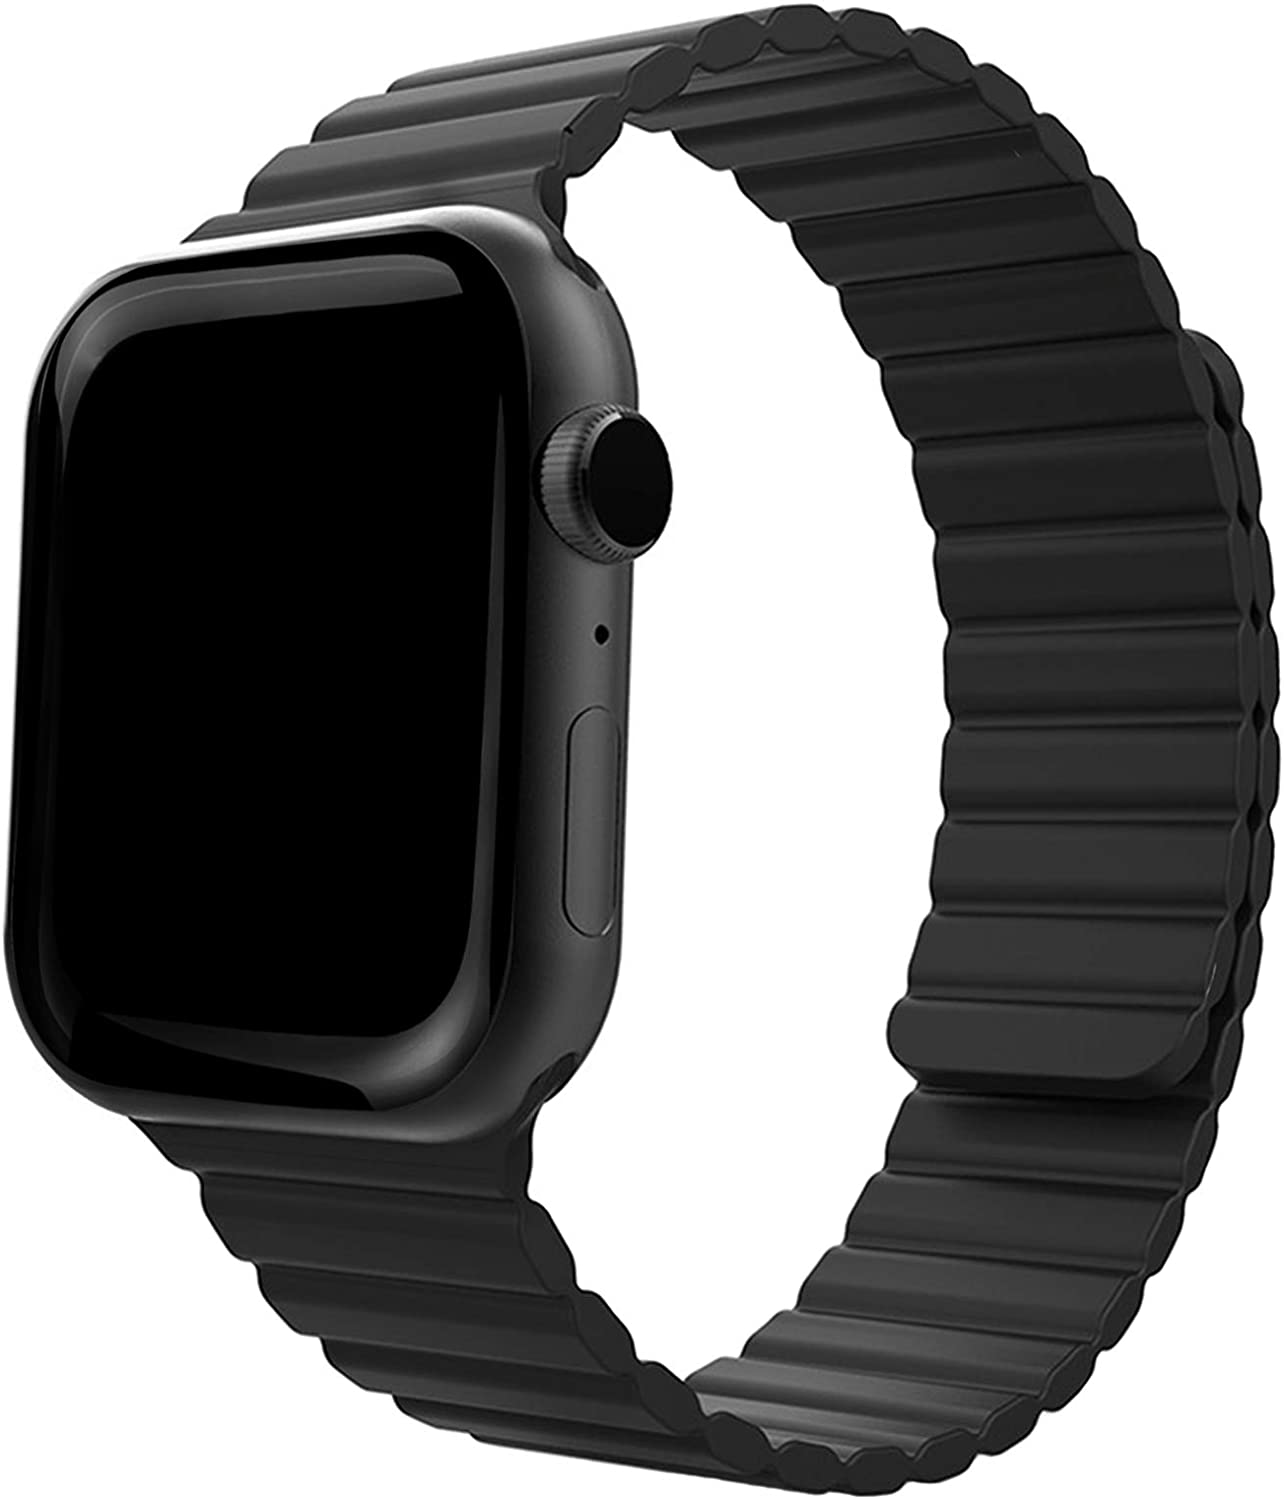 Silicone Magnetic Watch Bands for Apple Watch 42mm 44mm ONELANKS Adjustable Loop Strap with Strong Magnetic Closure for iWatch Series 6 5 SE 4 3 2 1